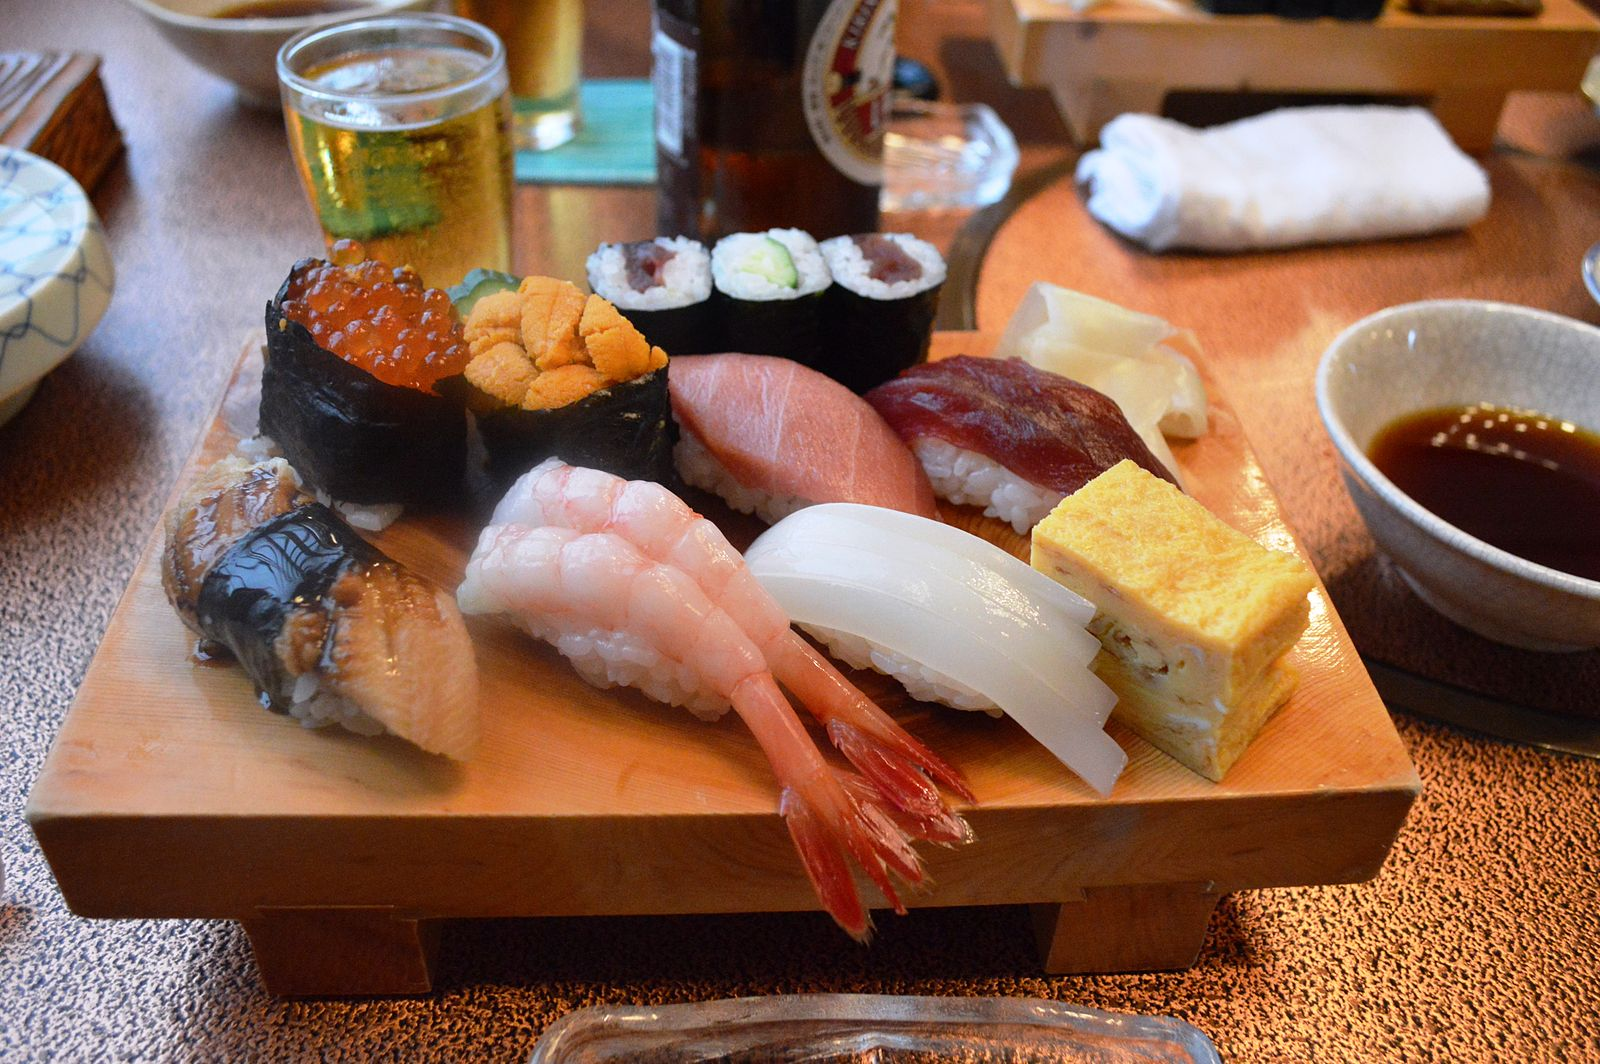 Orlando's Top Sushi Joints Put Their Best Fish Forward